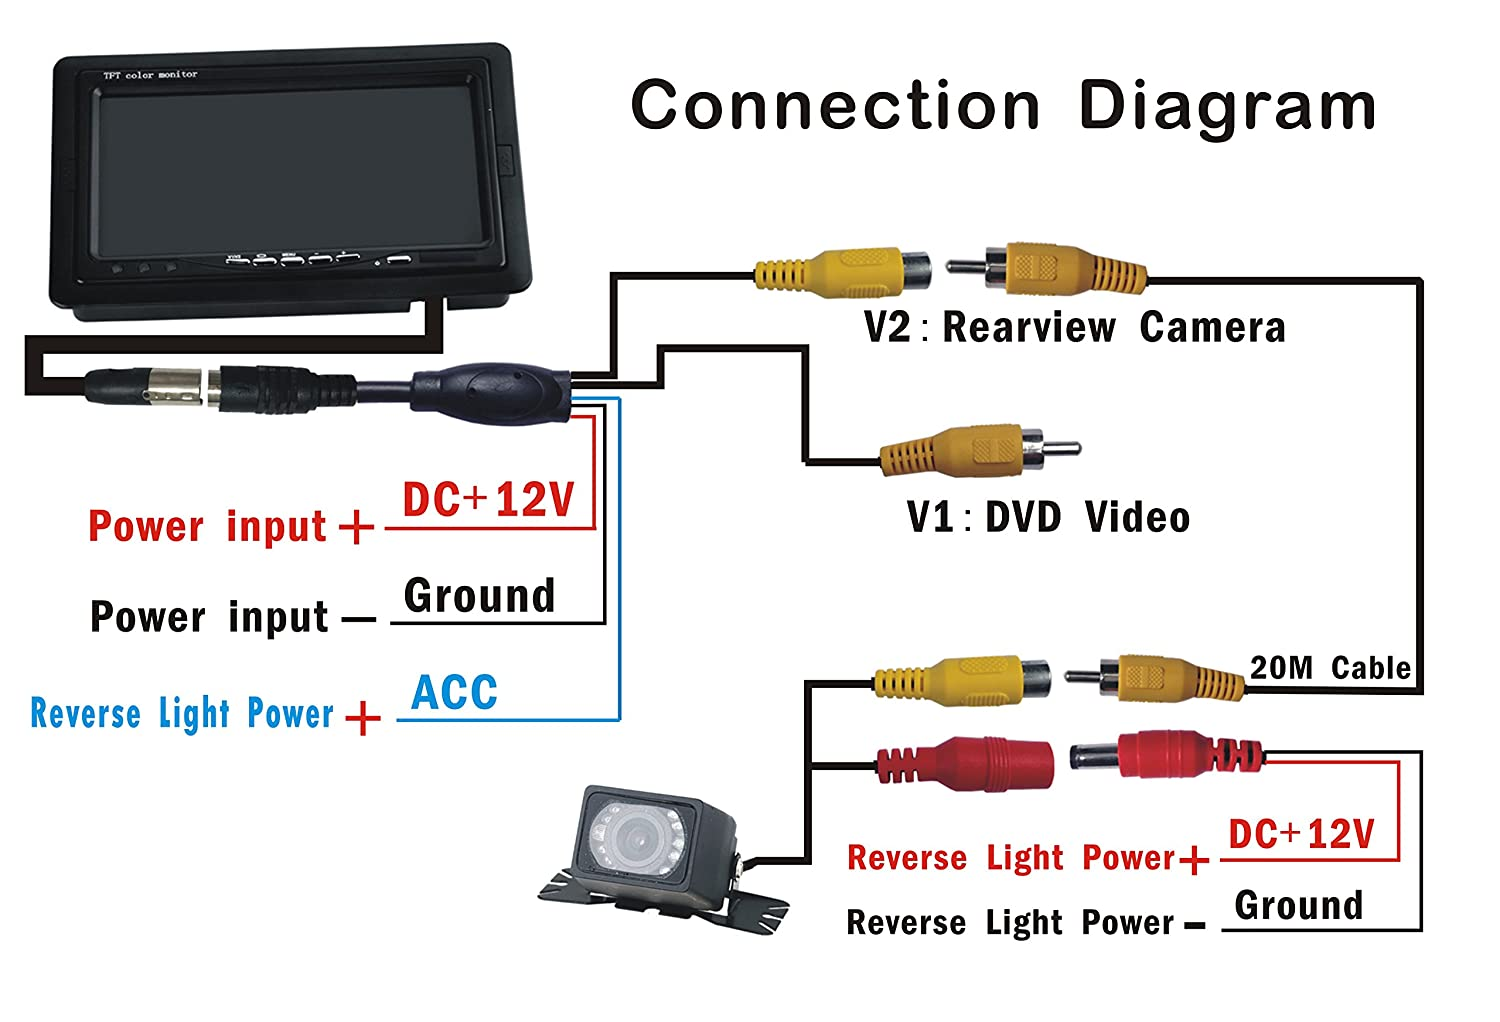 81KisOIYtBL._SL1500_ amazon com belle backup camera and monitor kit 7 inch tft lcd tft reversing camera wiring diagram at crackthecode.co